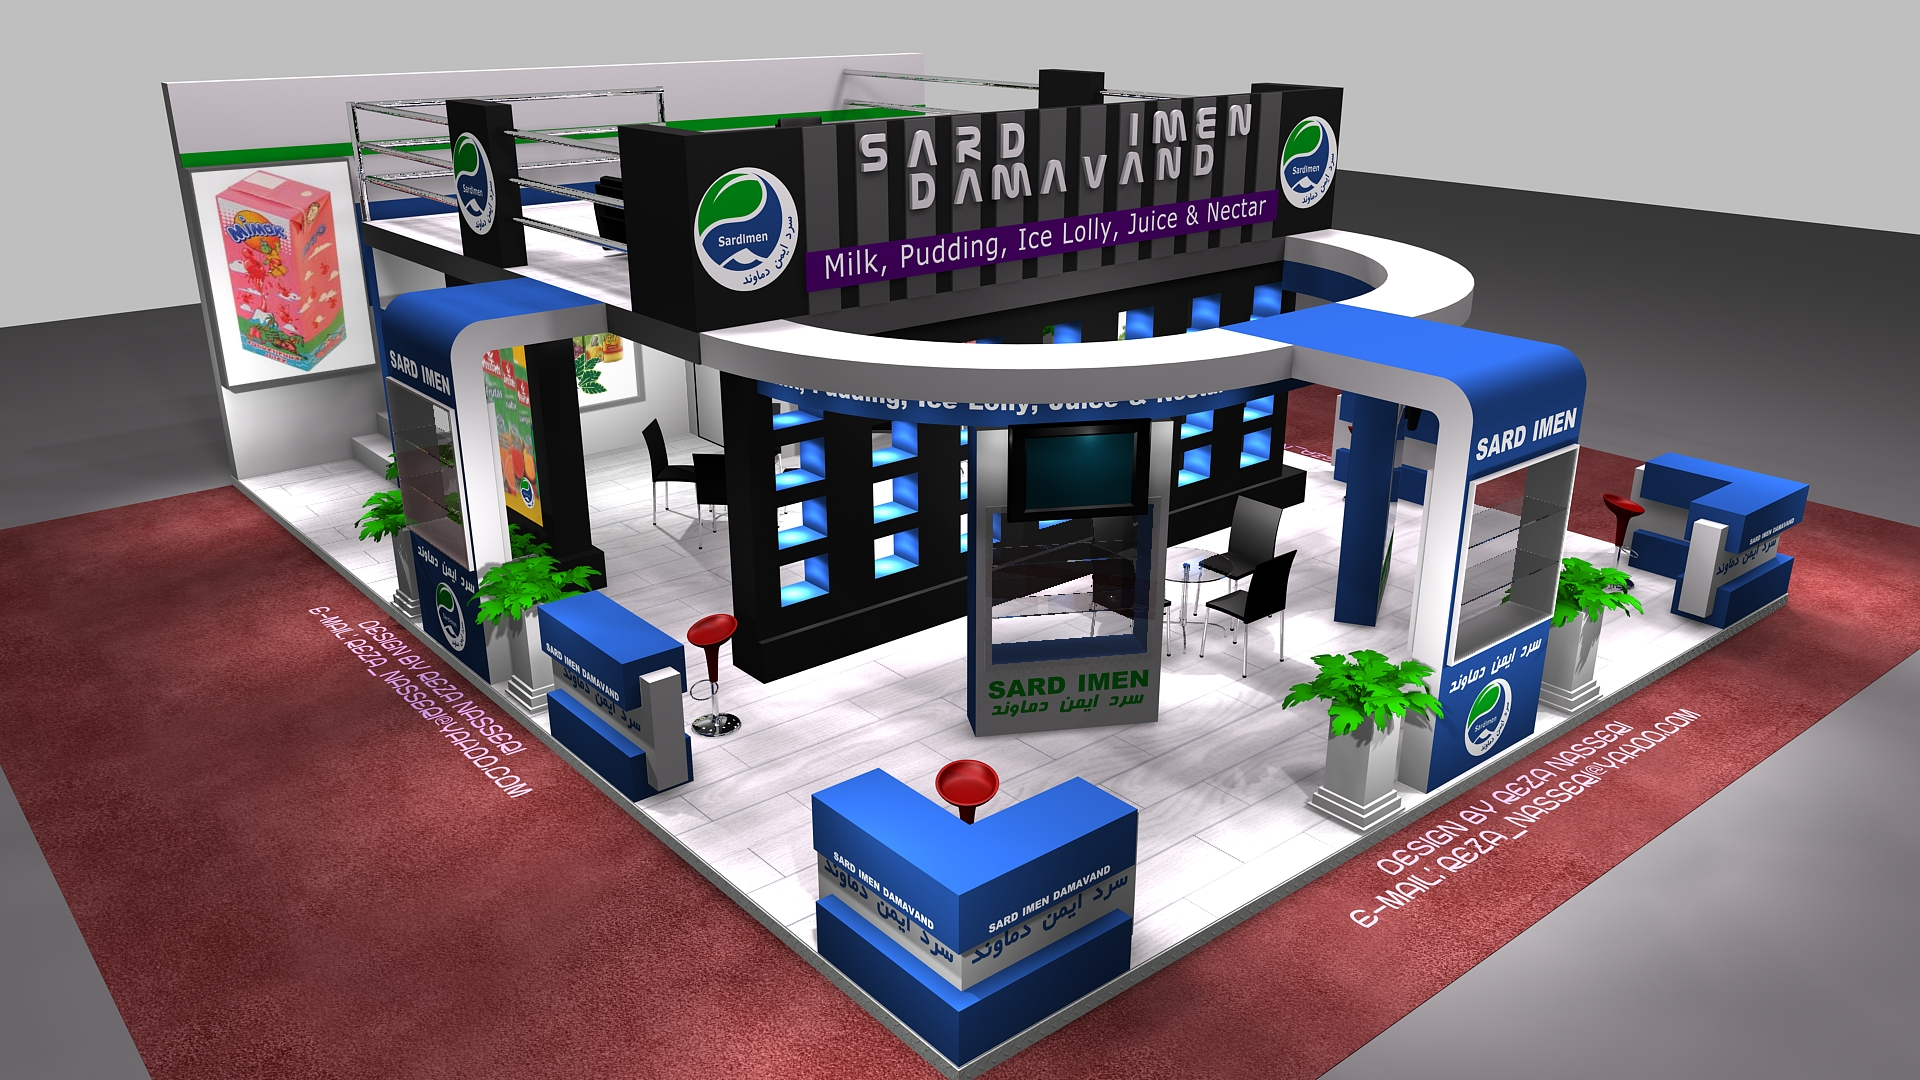 Exhibition Stall Image : Sard imen damavand exhibition stall design b by